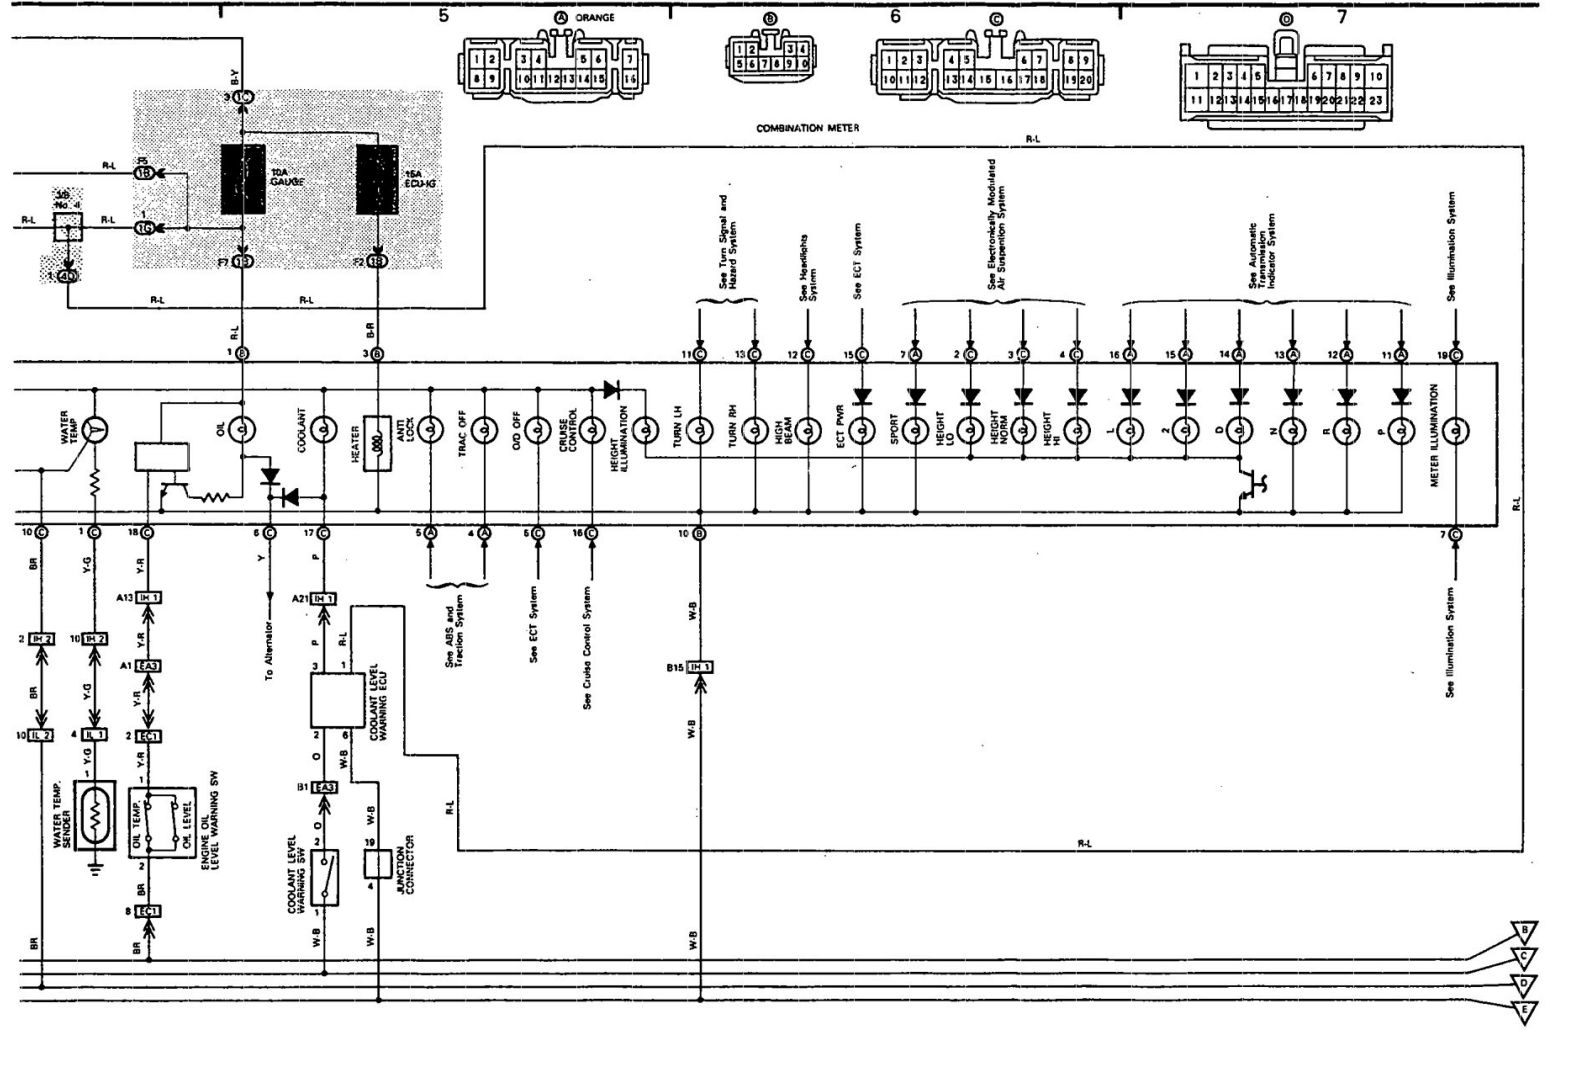 hight resolution of need picture of dashboard circuit board 91 instrument2 92d1d948c7a621c7dd51a88f3634fa52511b786b jpg